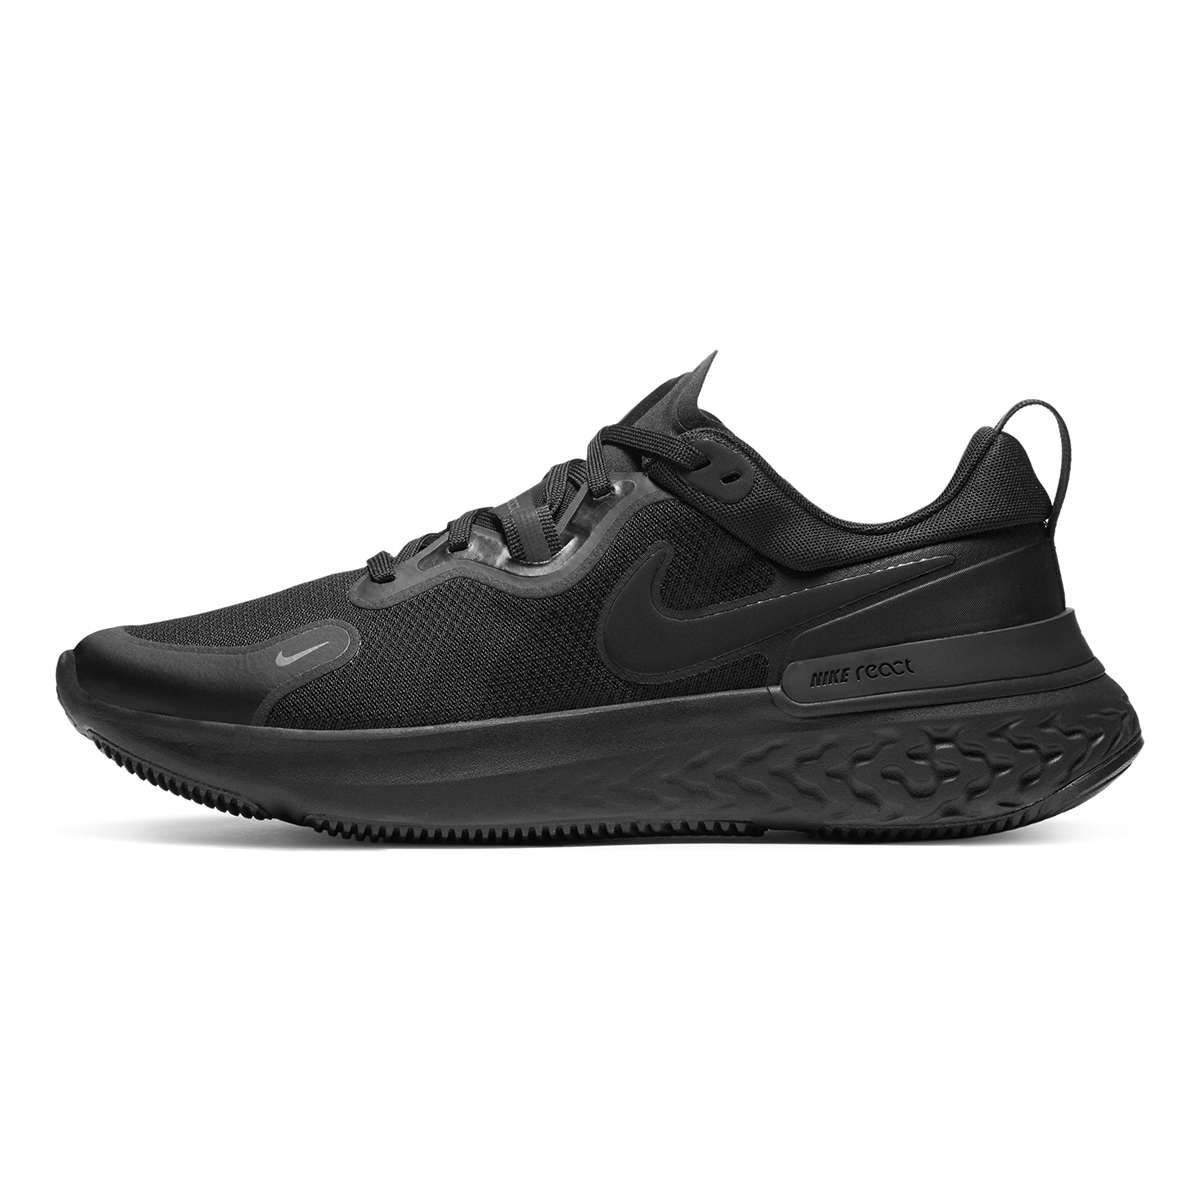 Men's Nike React Miler Running Shoe - Color: Black/Iron Grey/White/Black - Size: 6 - Width: Regular, Black/Iron Grey/White/Black, large, image 3